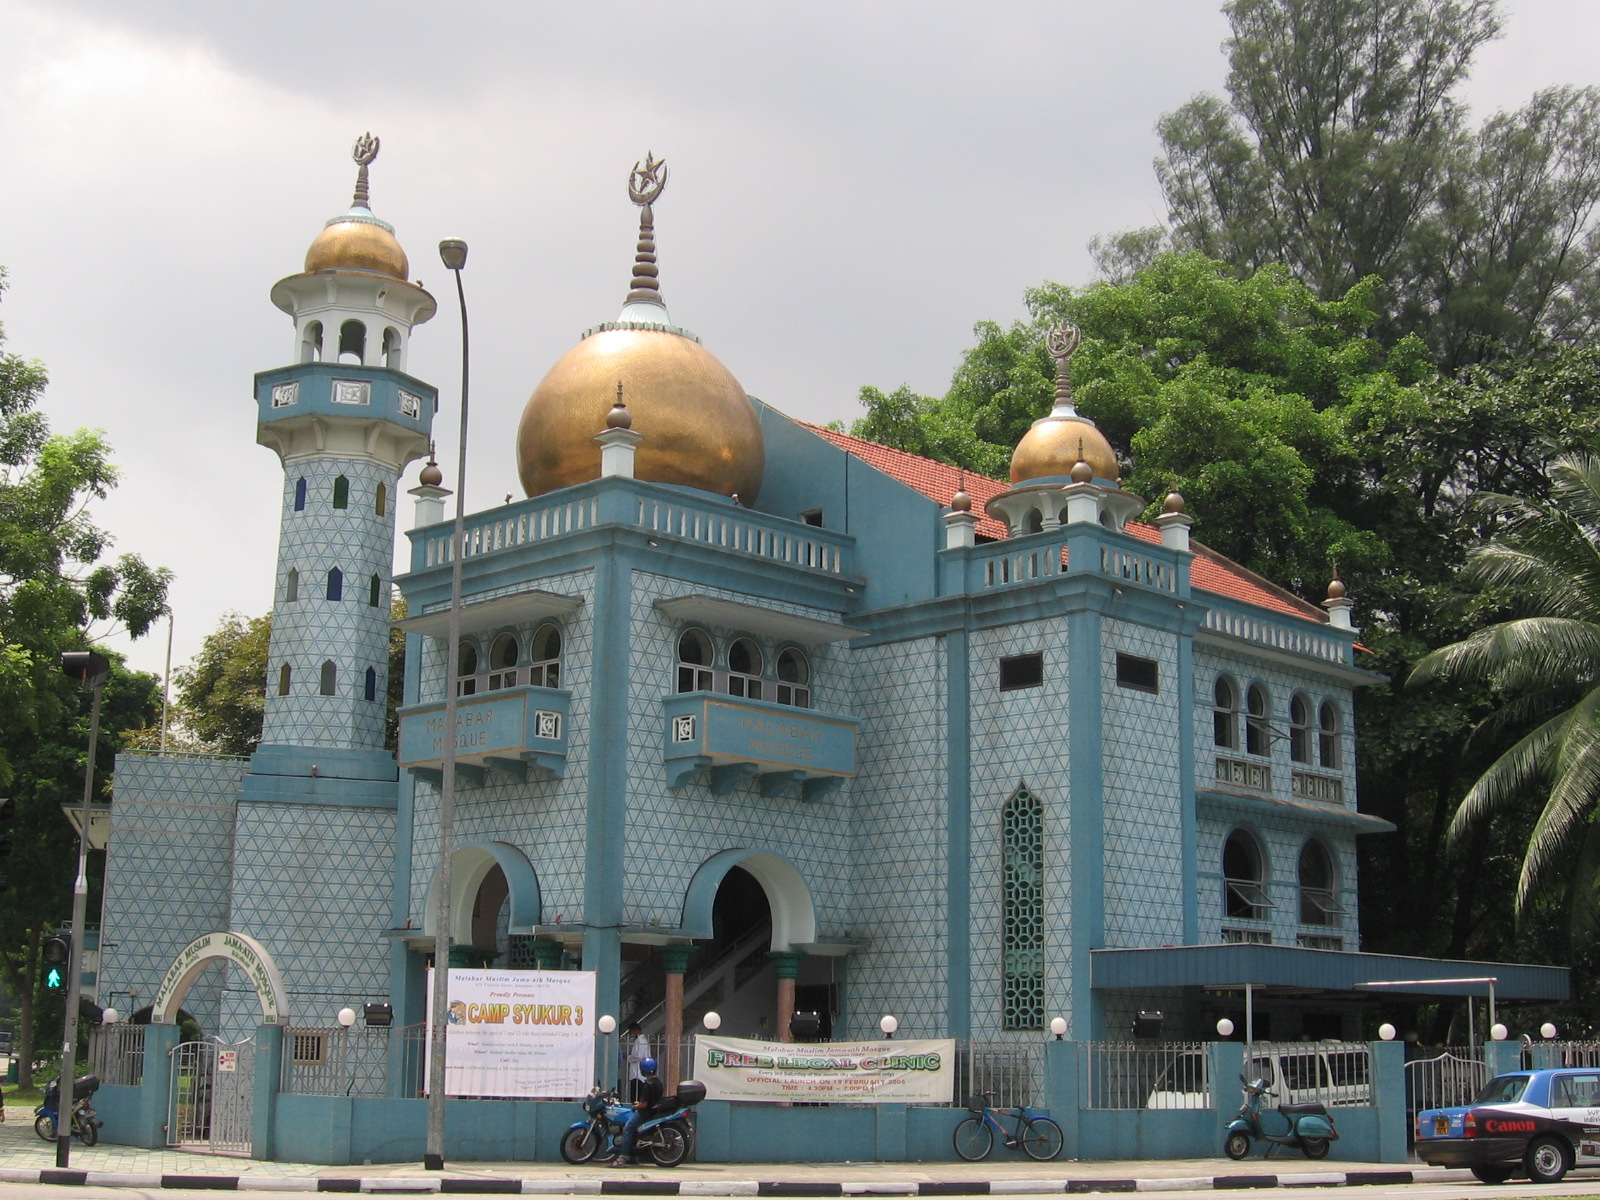 Malabar Mosque Singapore Map,Map of Malabar Mosque Singapore,Tourist Attractions in Singapore,Malabar Mosque Singapore accommodation destinations attractions hotels map reviews photos pictures